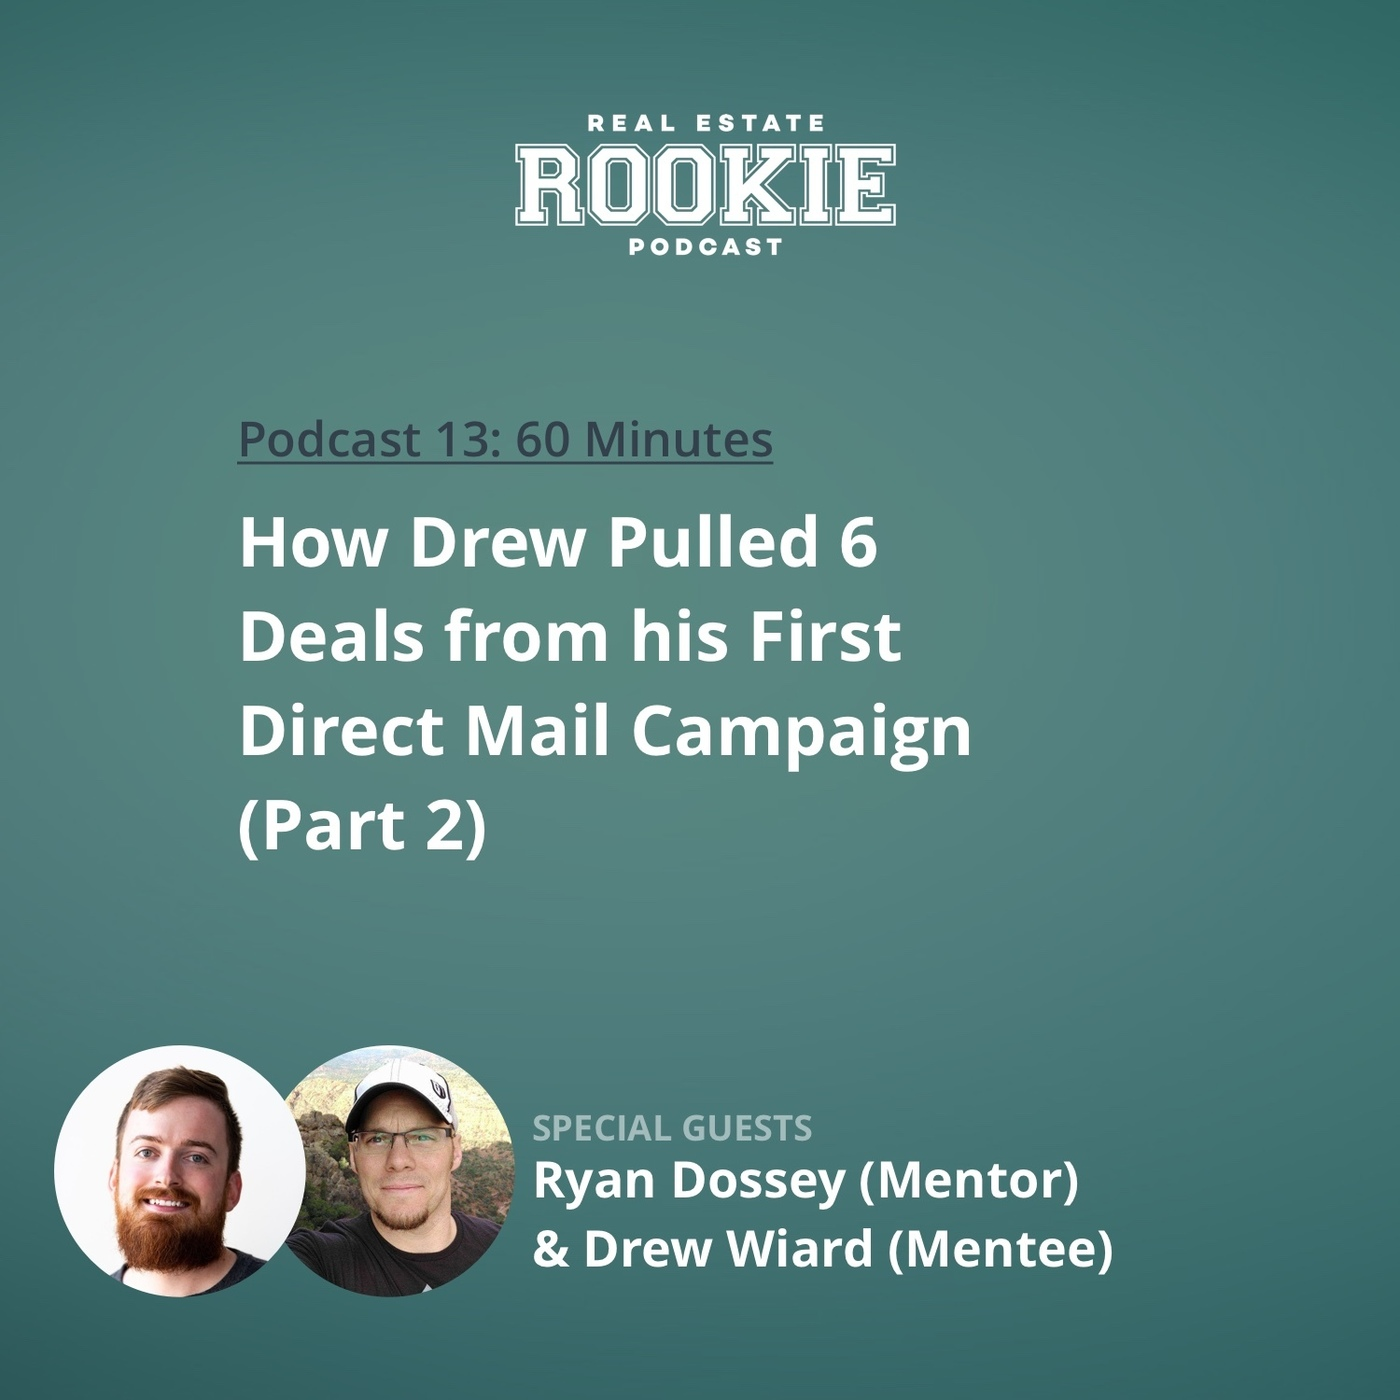 How Drew Pulled 6 Deals From His First Direct Mail Campaign With Ryan Dossey (Mentor) and Drew Wiard (Mentee)—Part 2